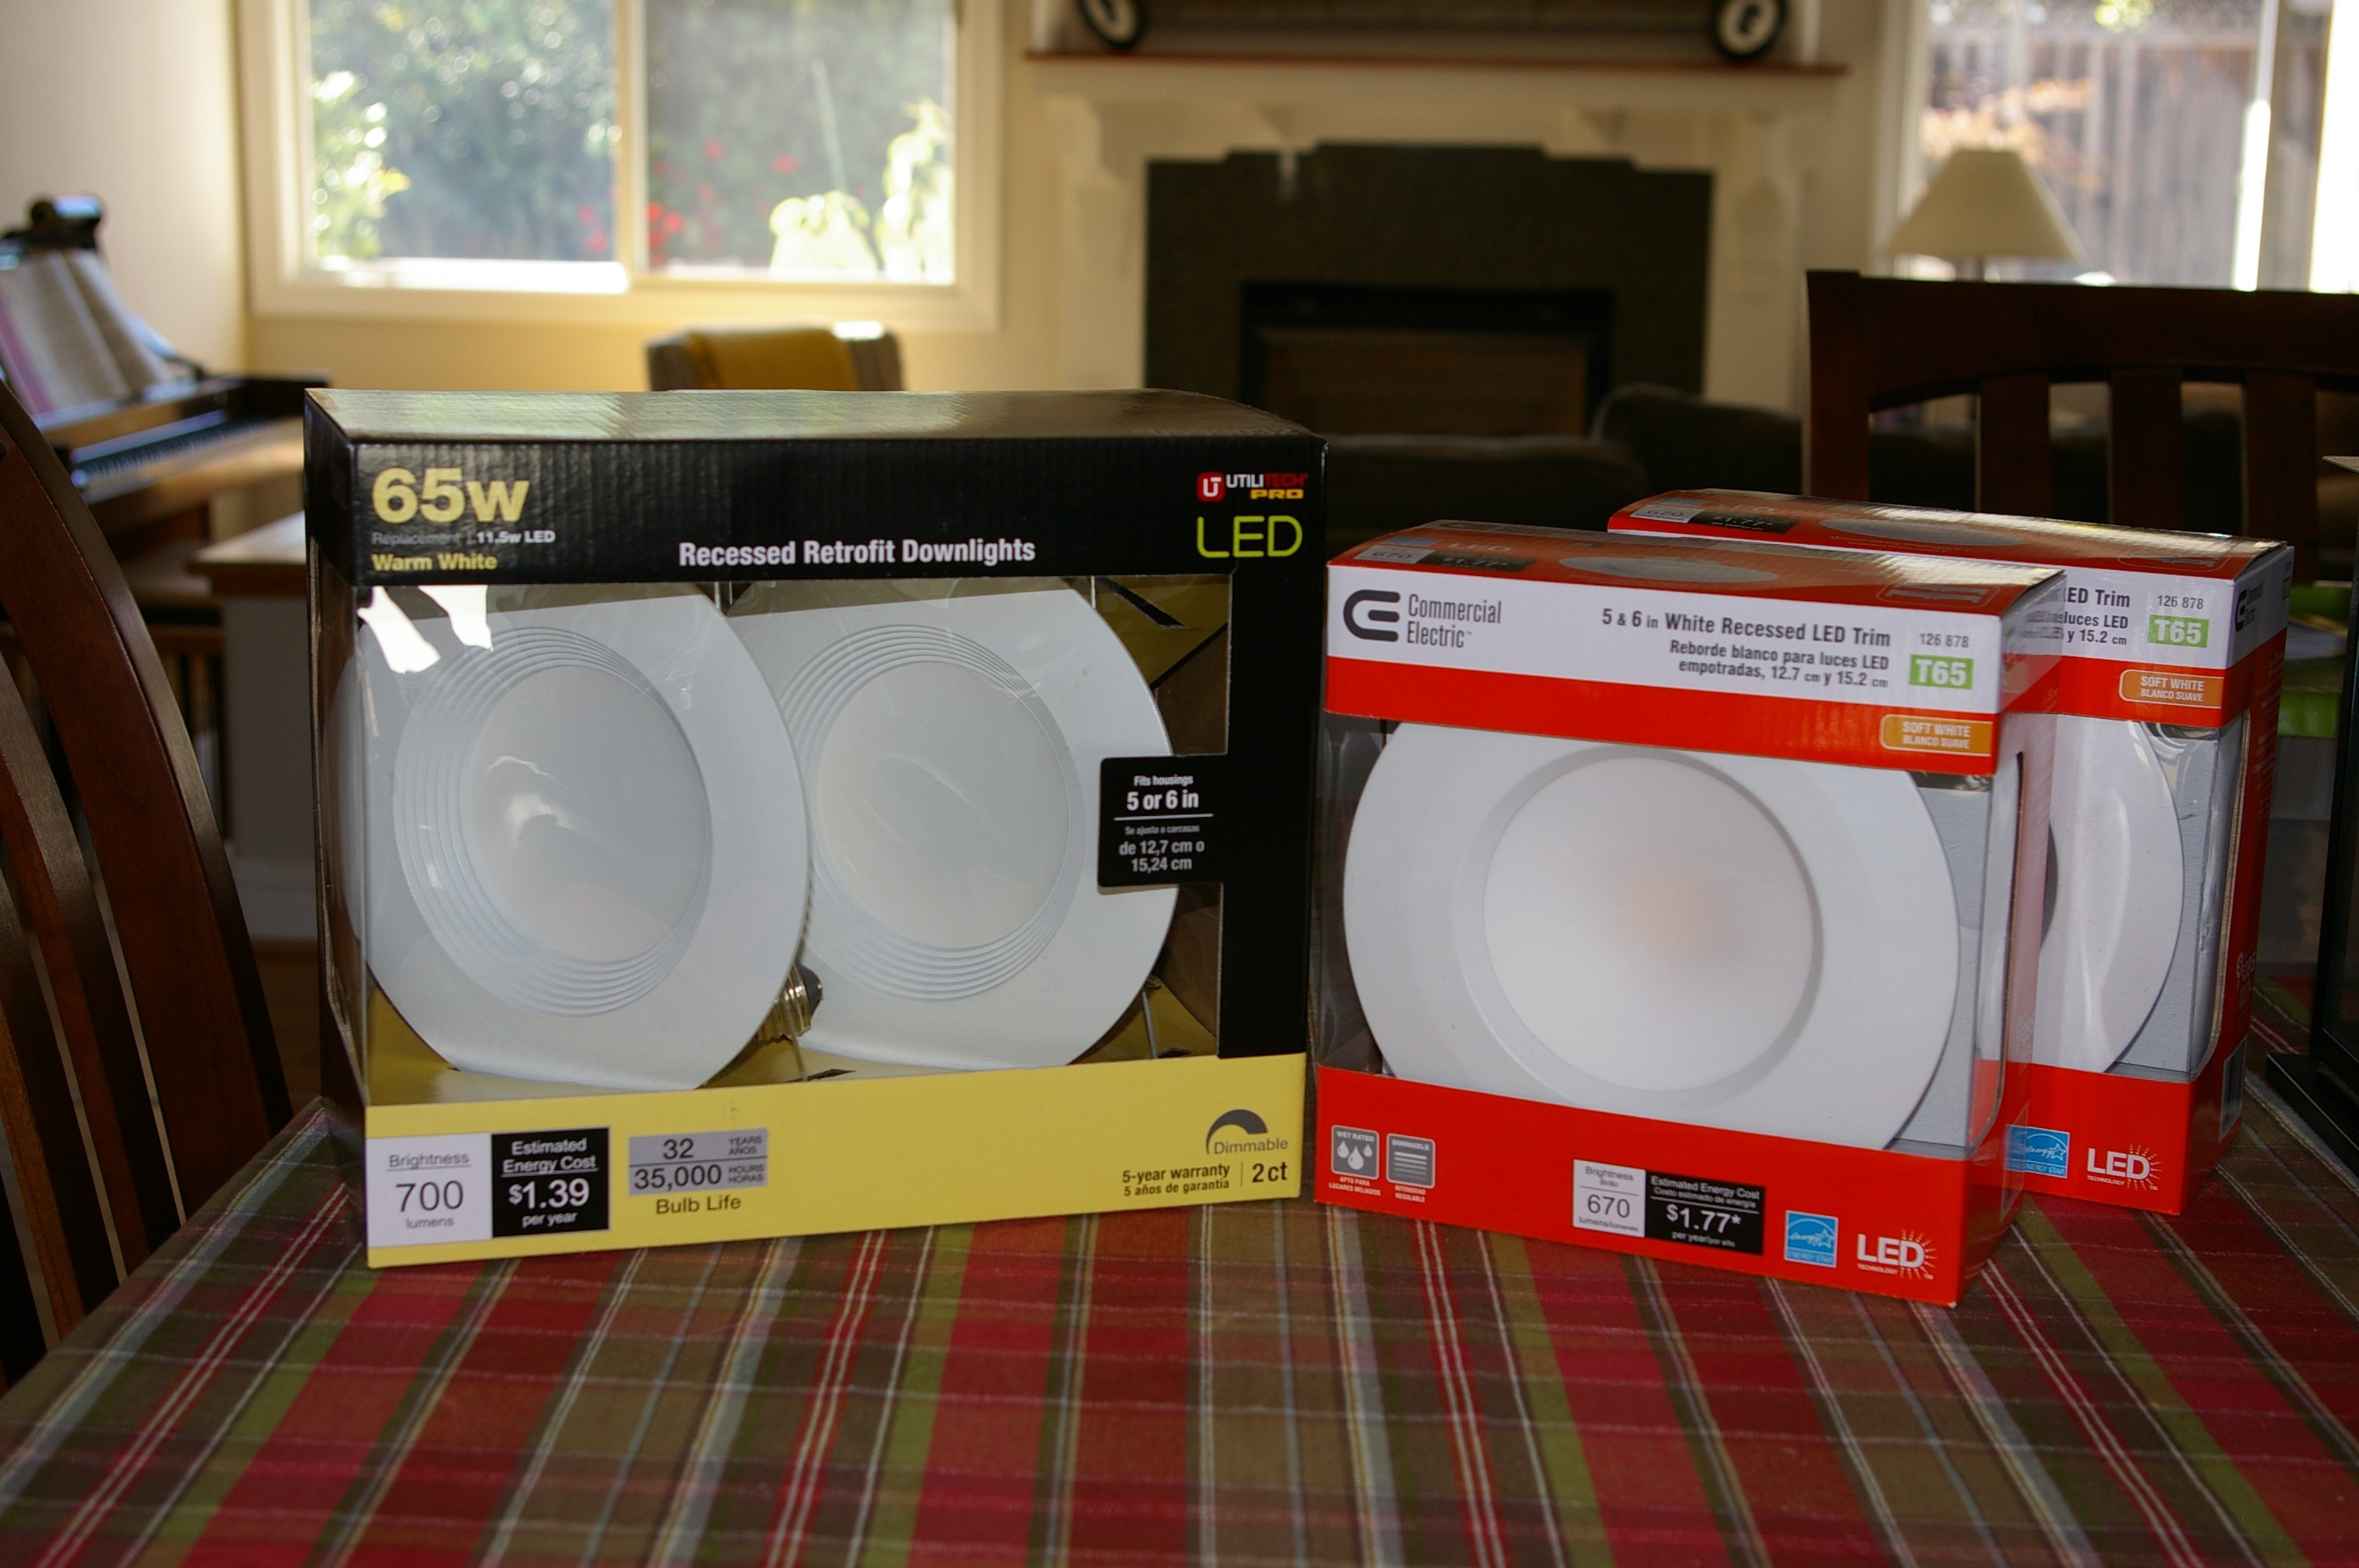 Led recessed lighting shootout home depot vs lowes vs costco